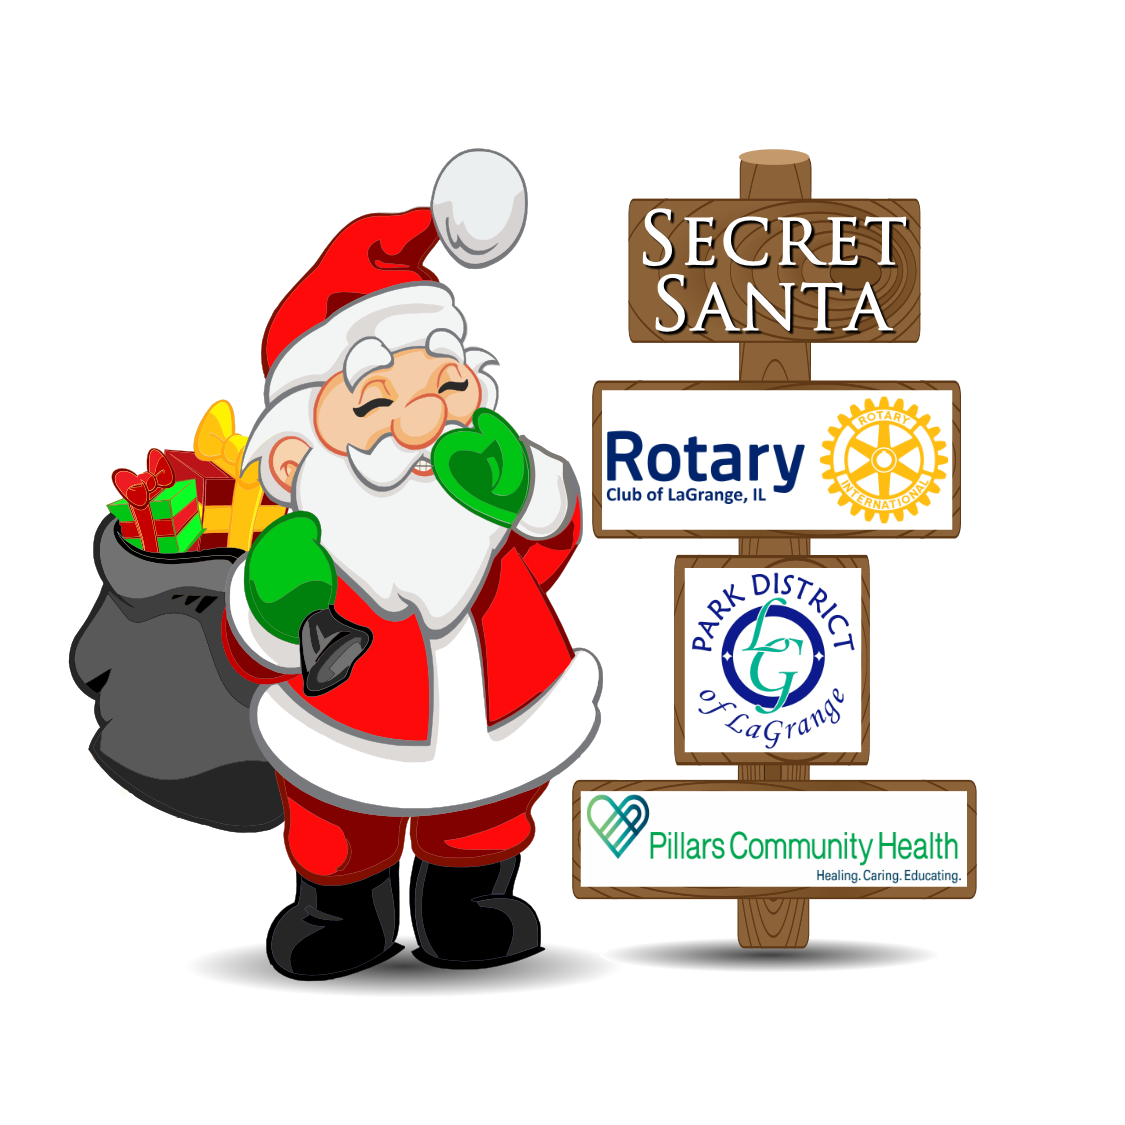 Secret Santa logo png 72dpi